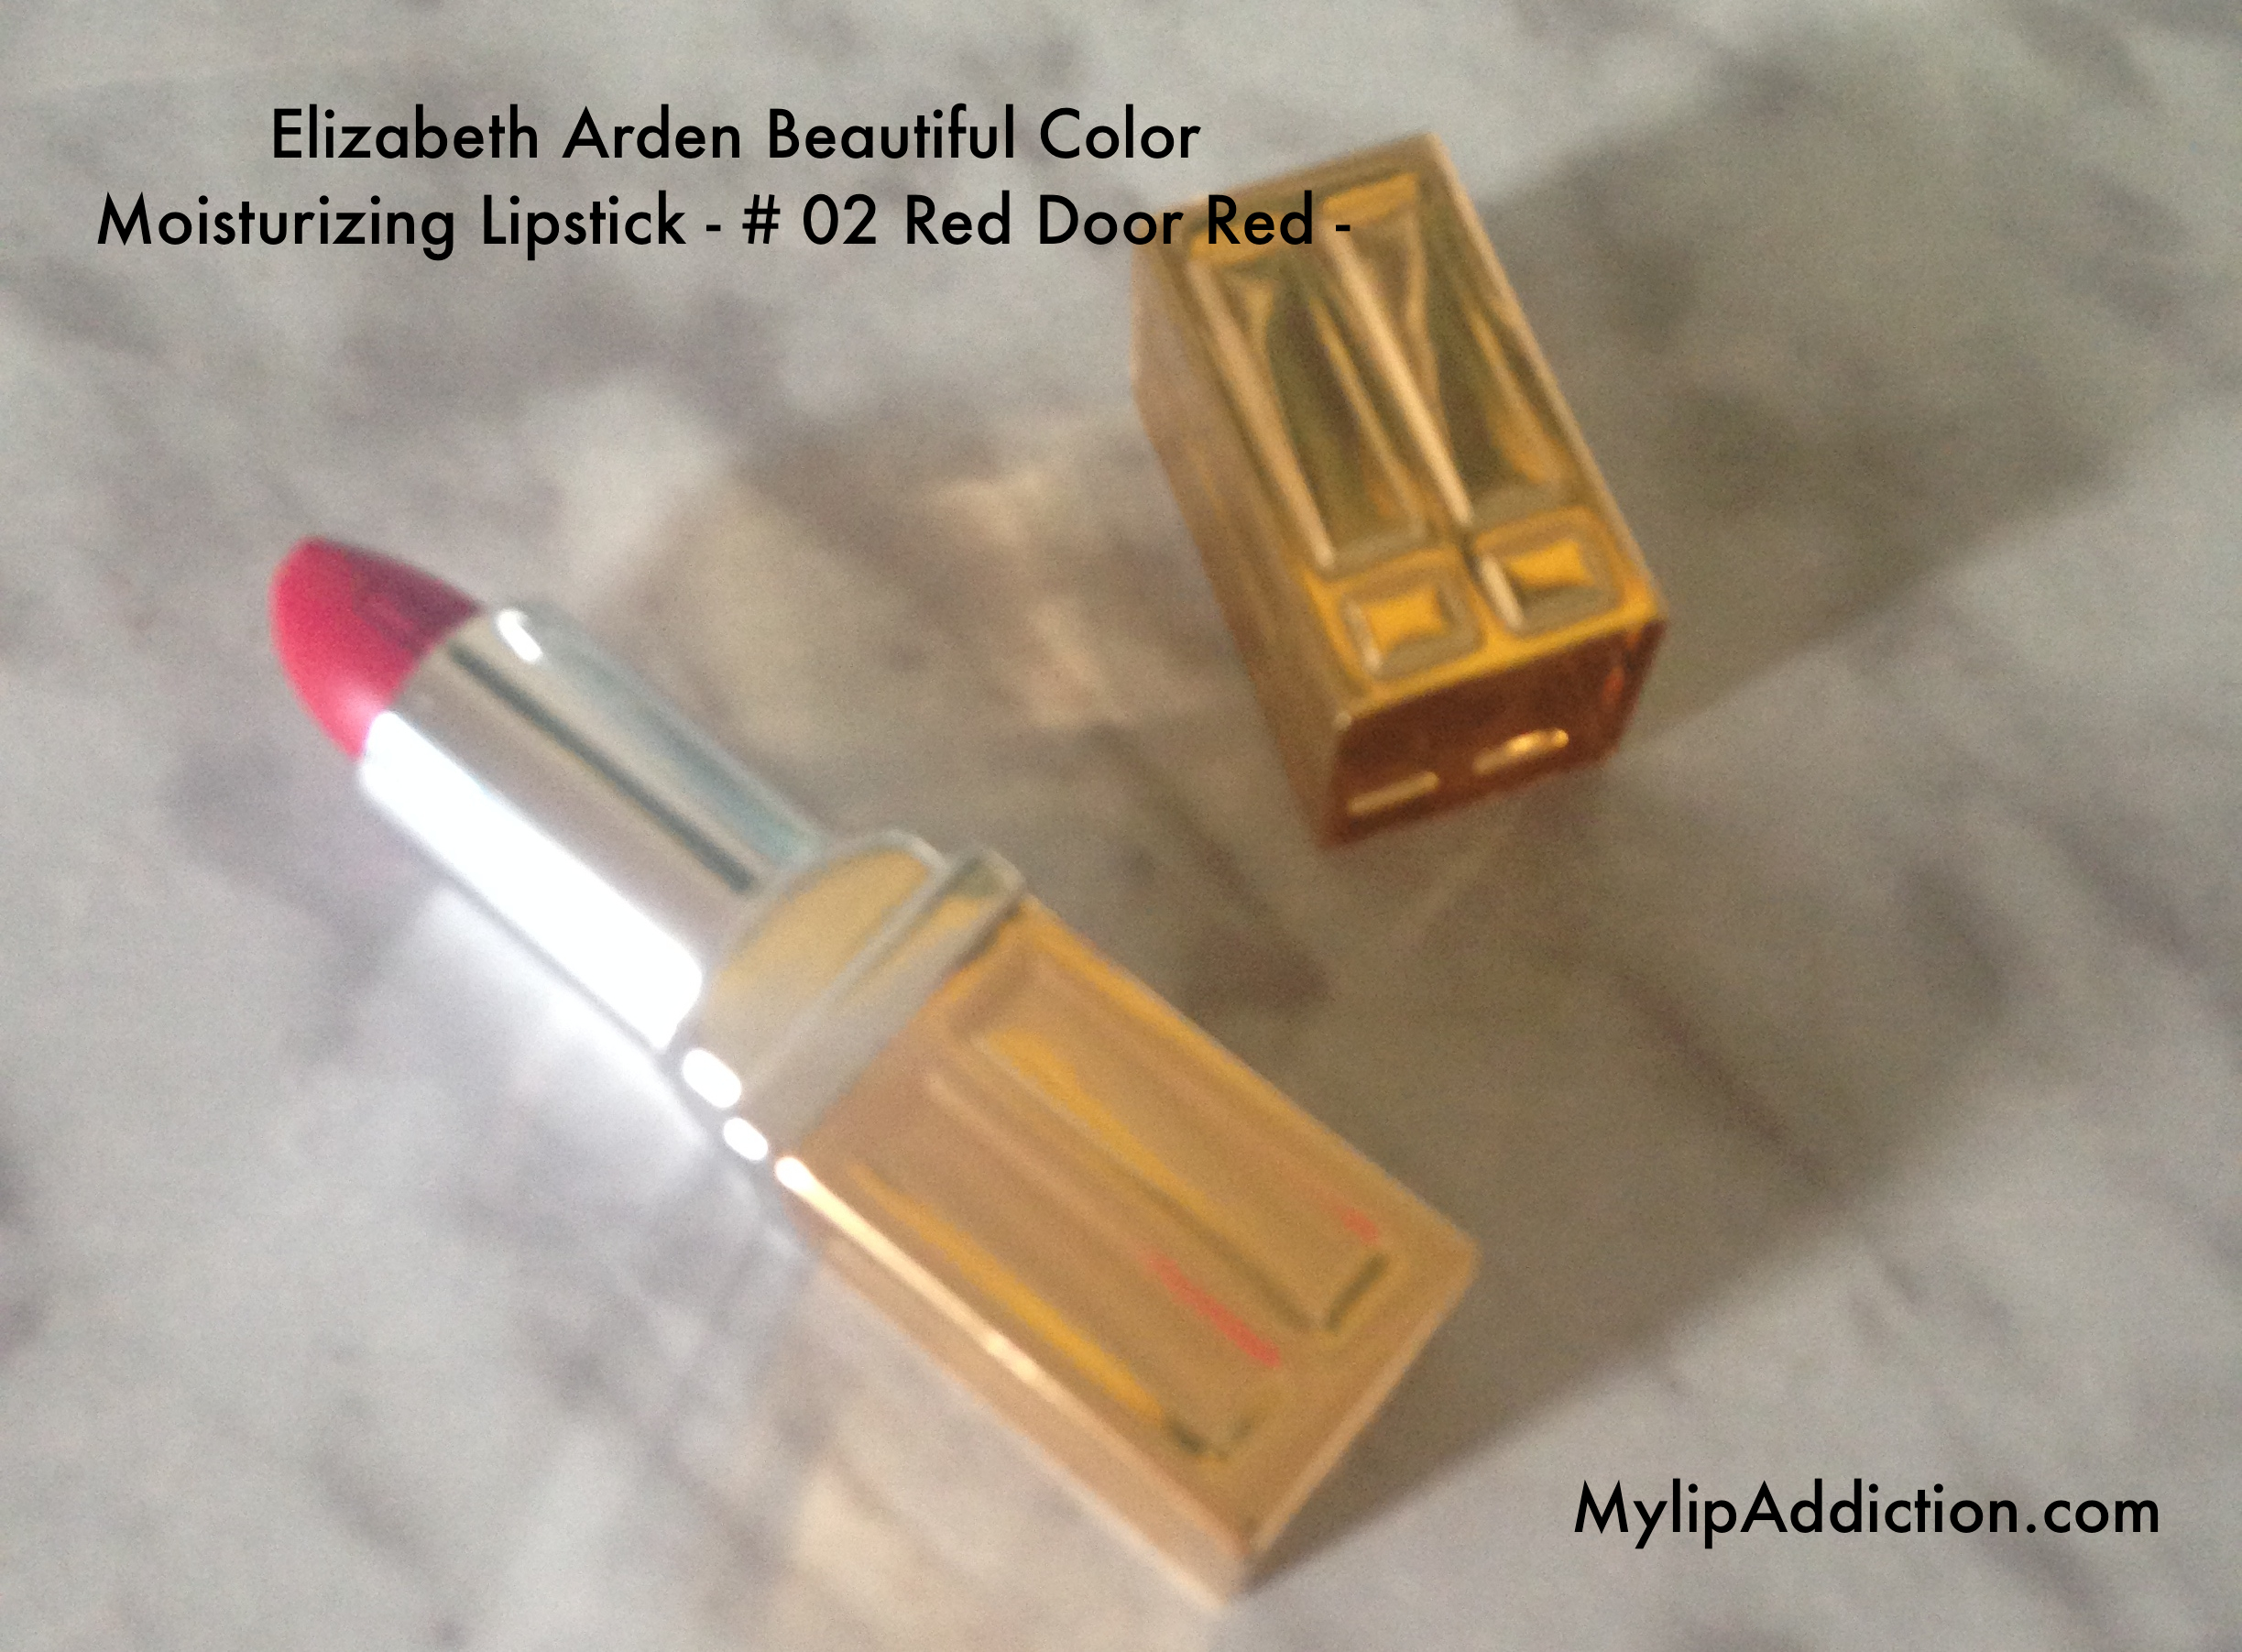 Elizabeth Arden Beautiful Color Moisturizing Lipstick 02 Red